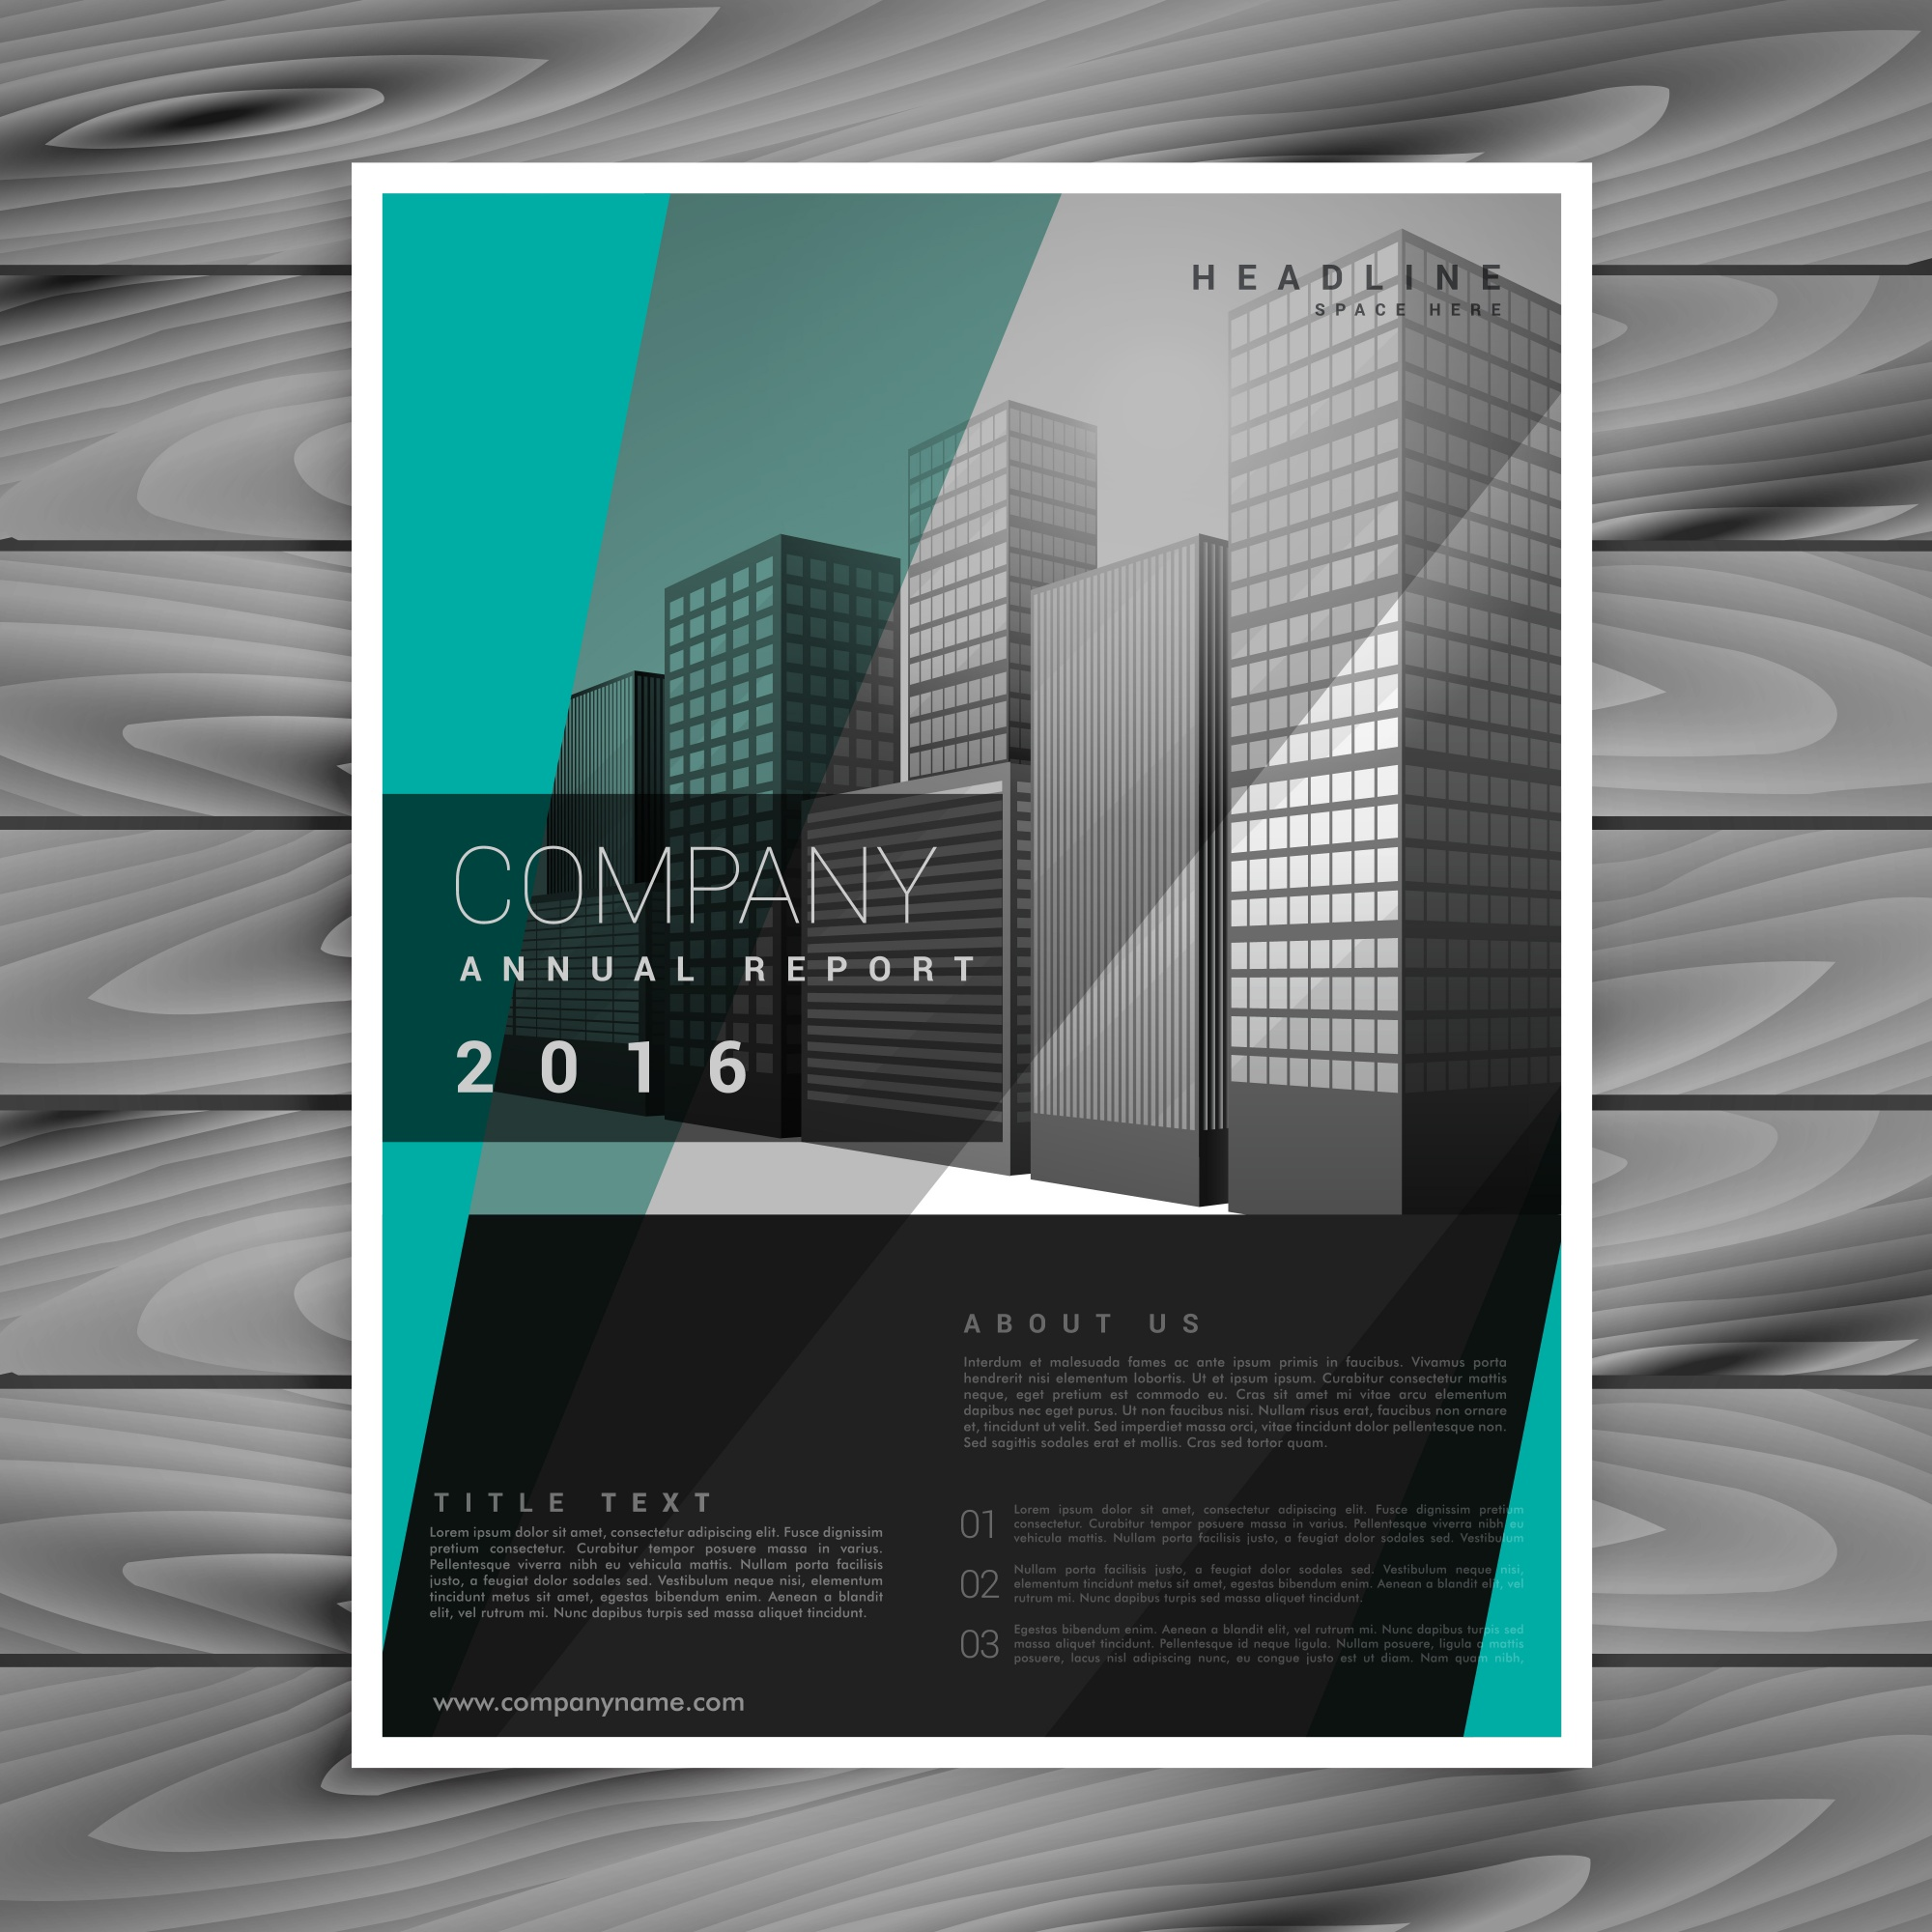 Dark business brochure vector design with geometric green shapes